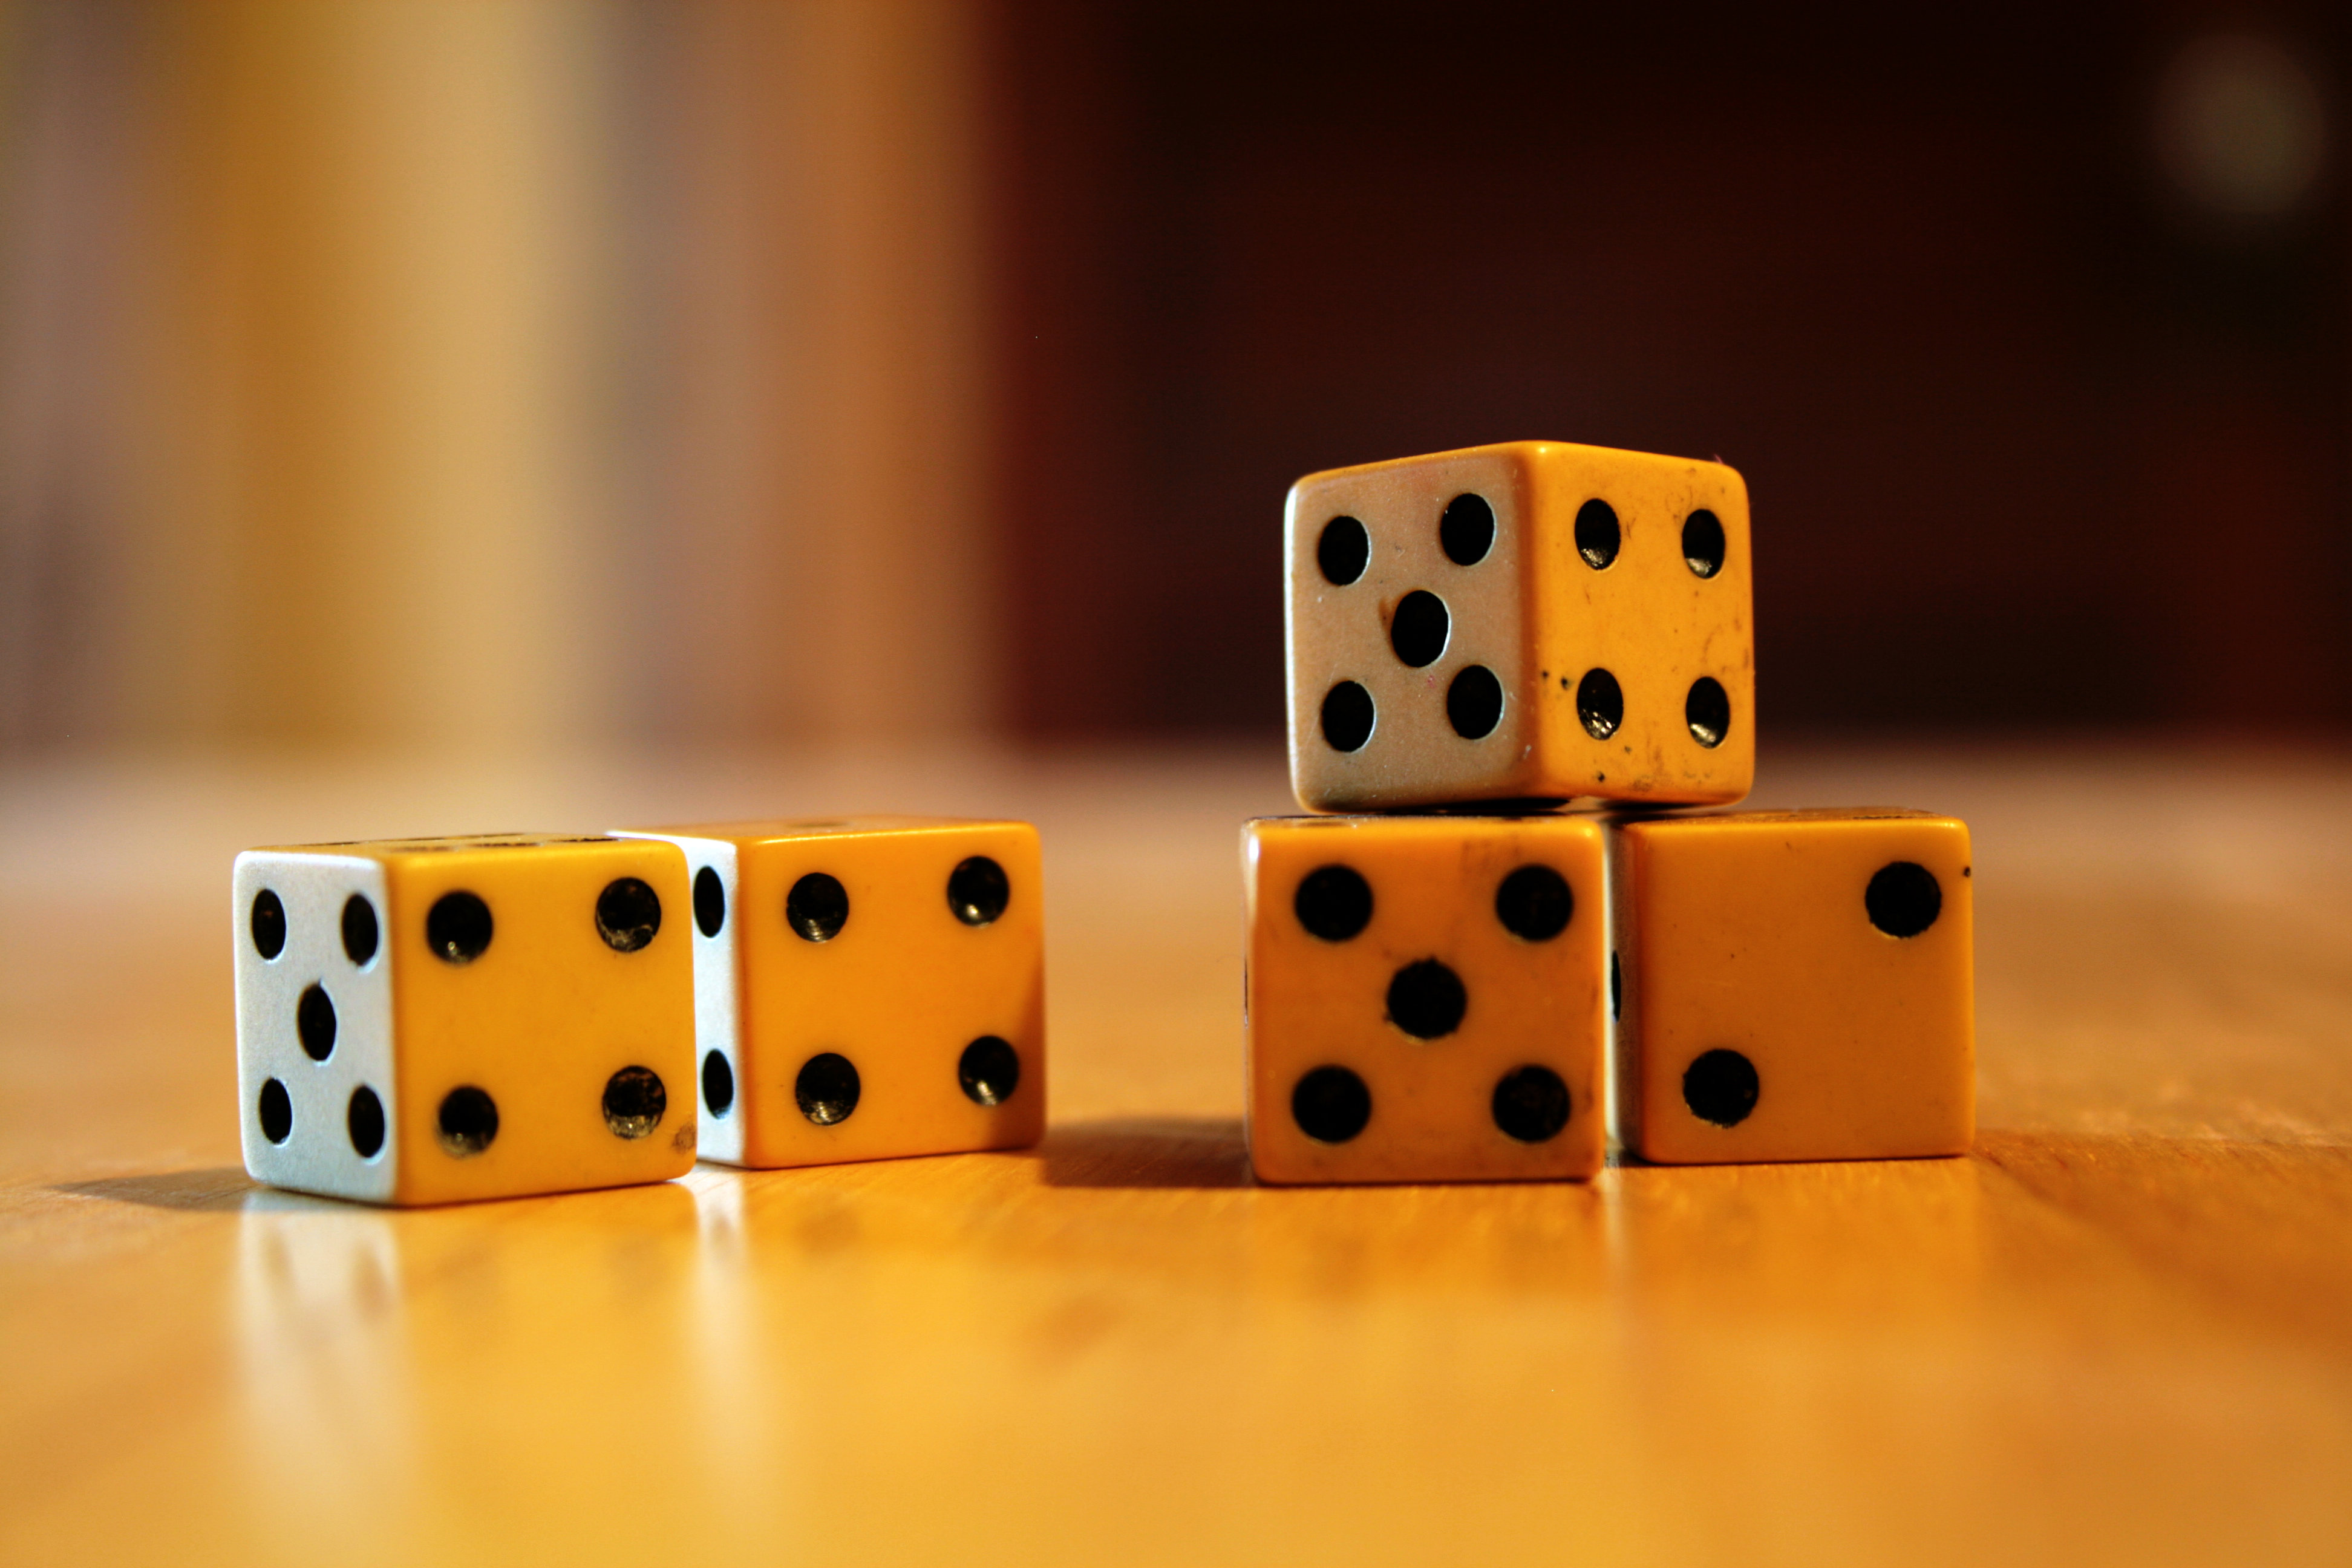 dice games with 5 dice